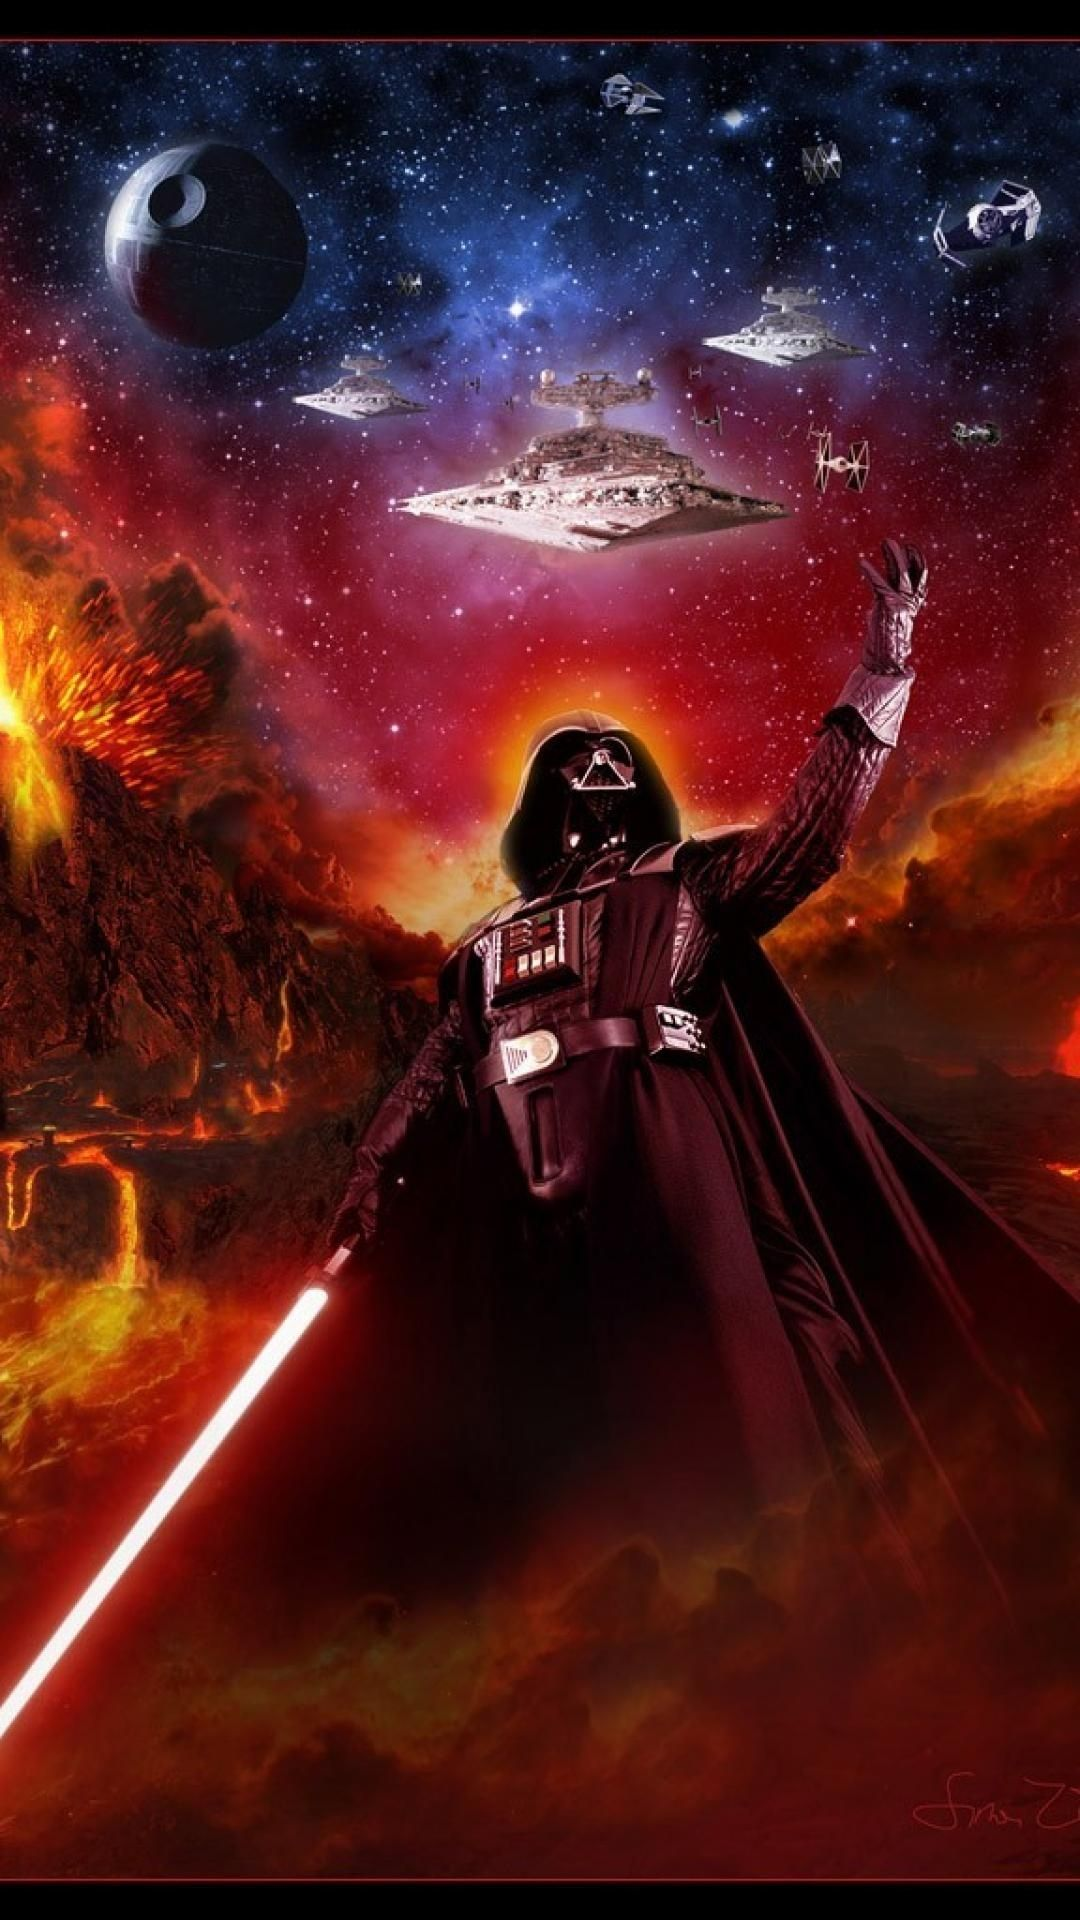 Star Wars Wallpapers For Iphone 5 Posted By Samantha Johnson